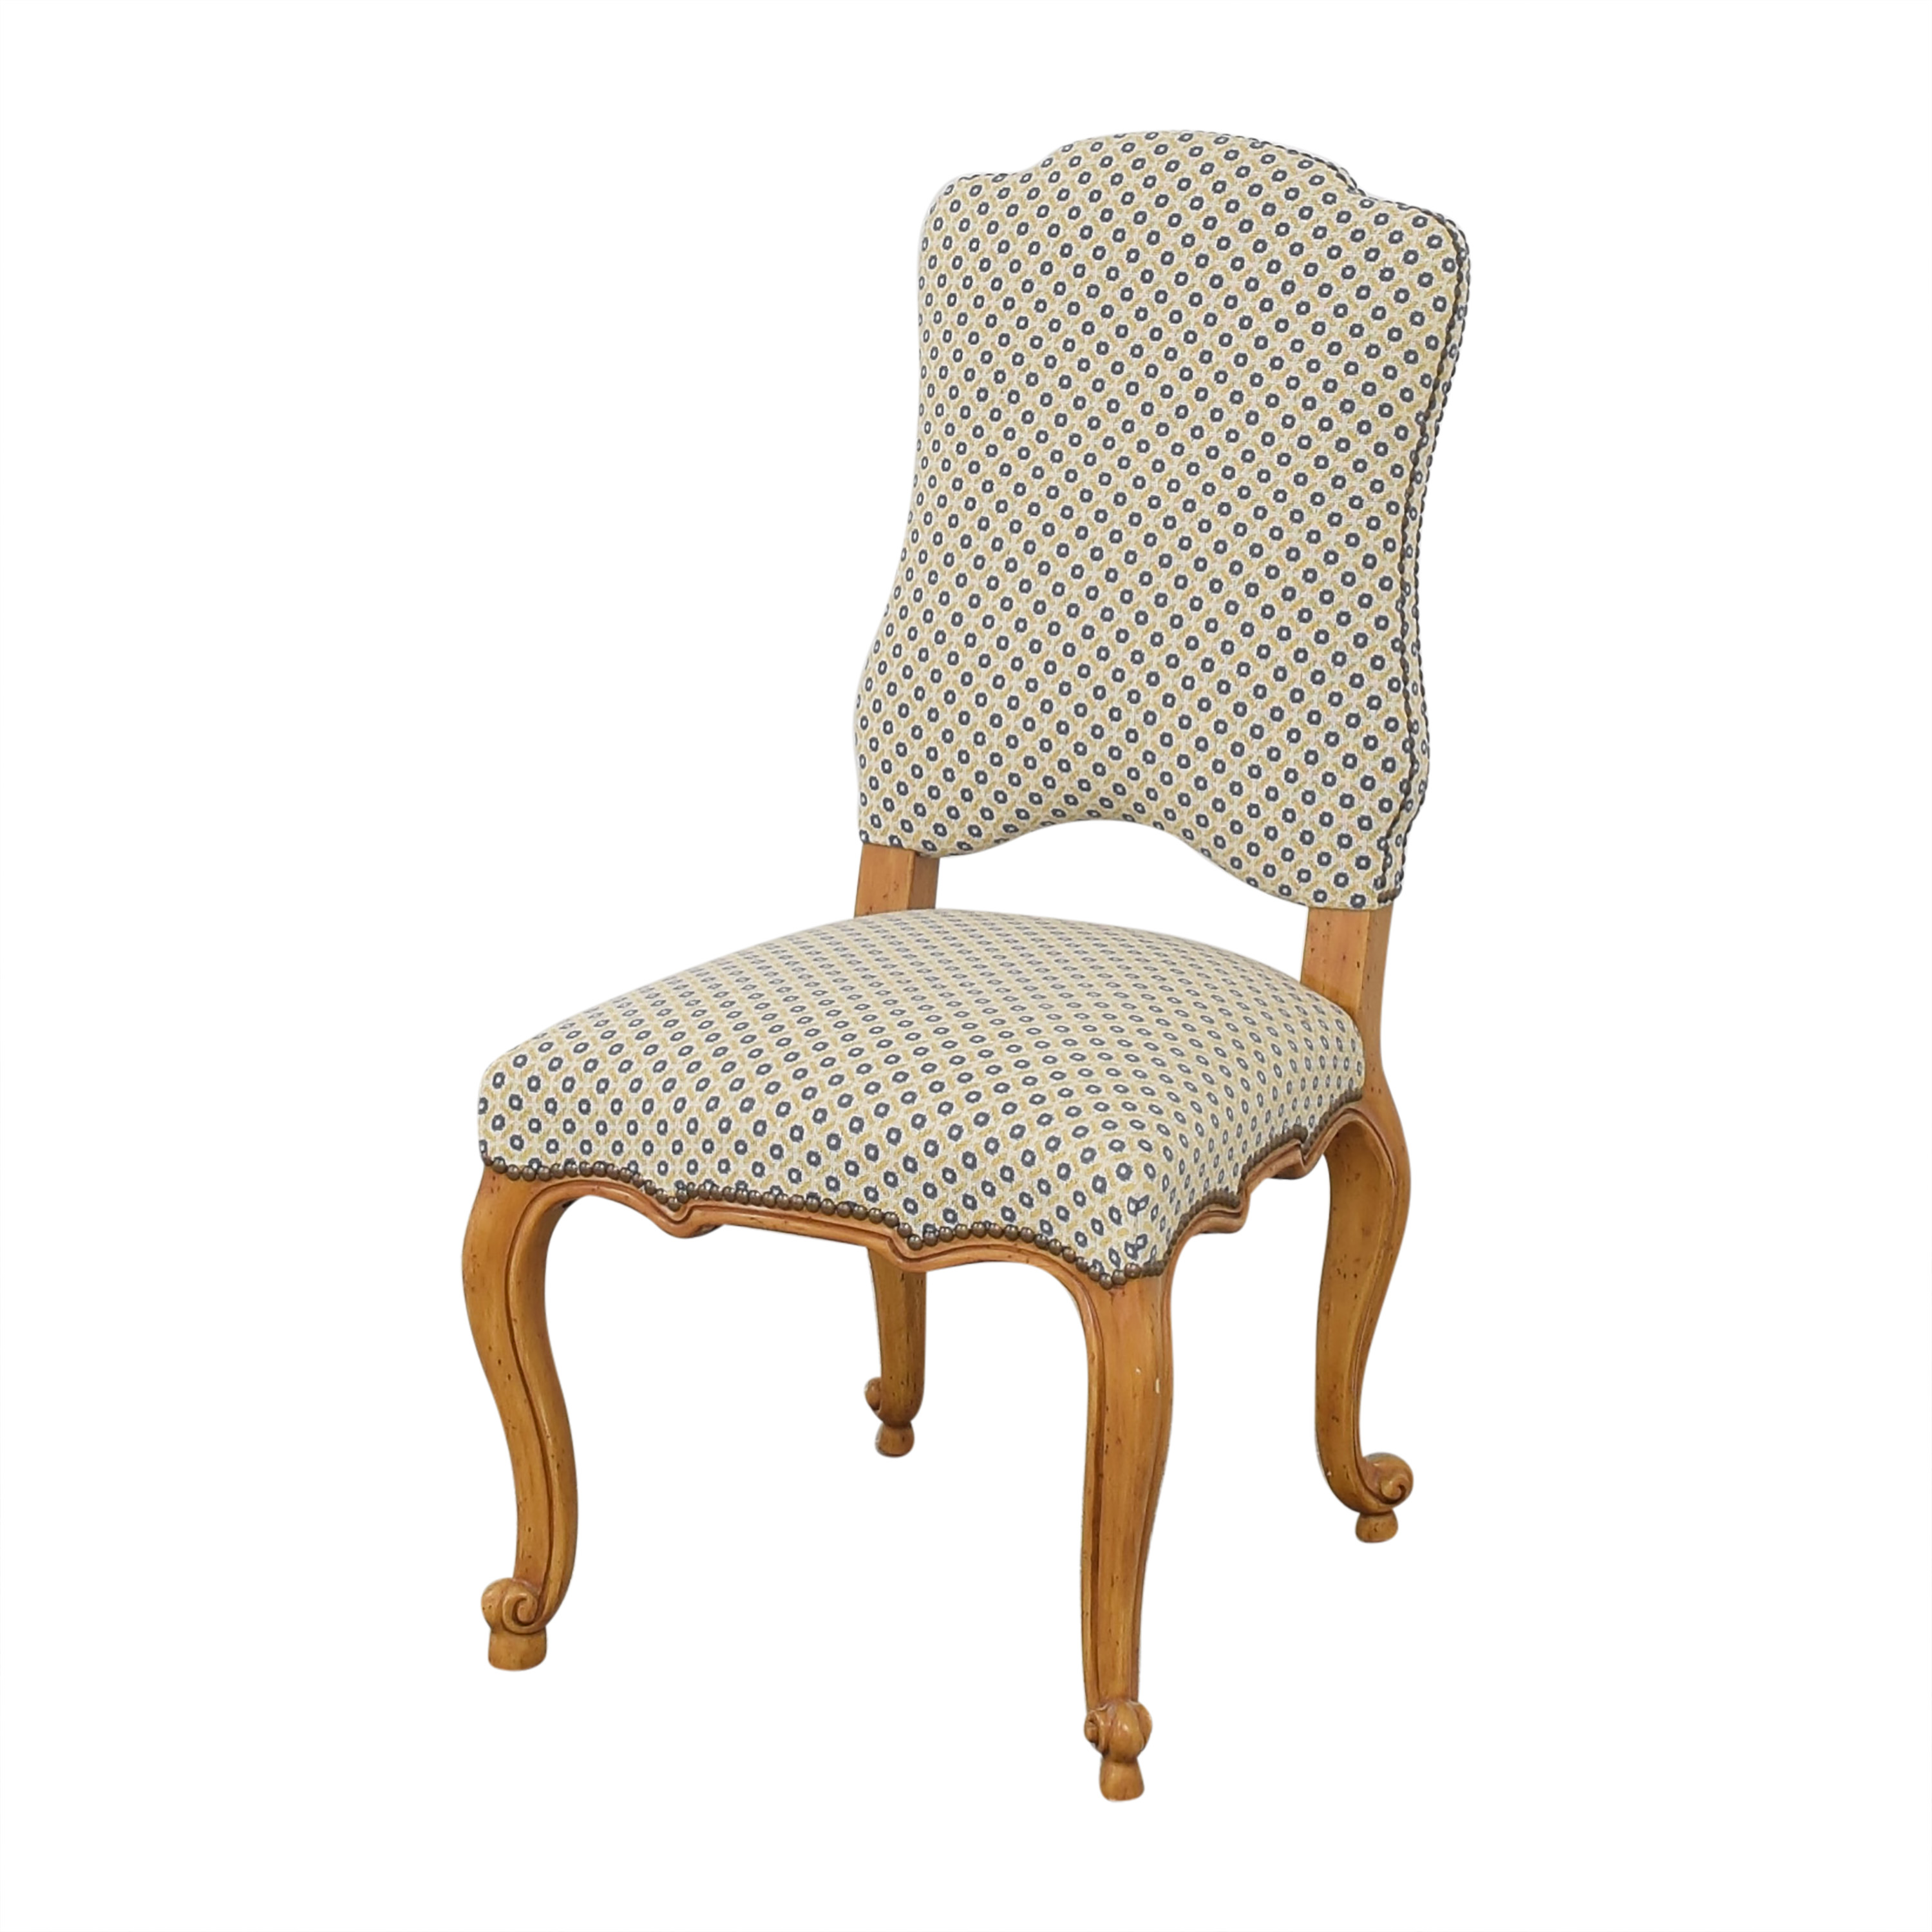 Minton-Spidell Minton-Spidell Regence Dining Side Chairs Chairs